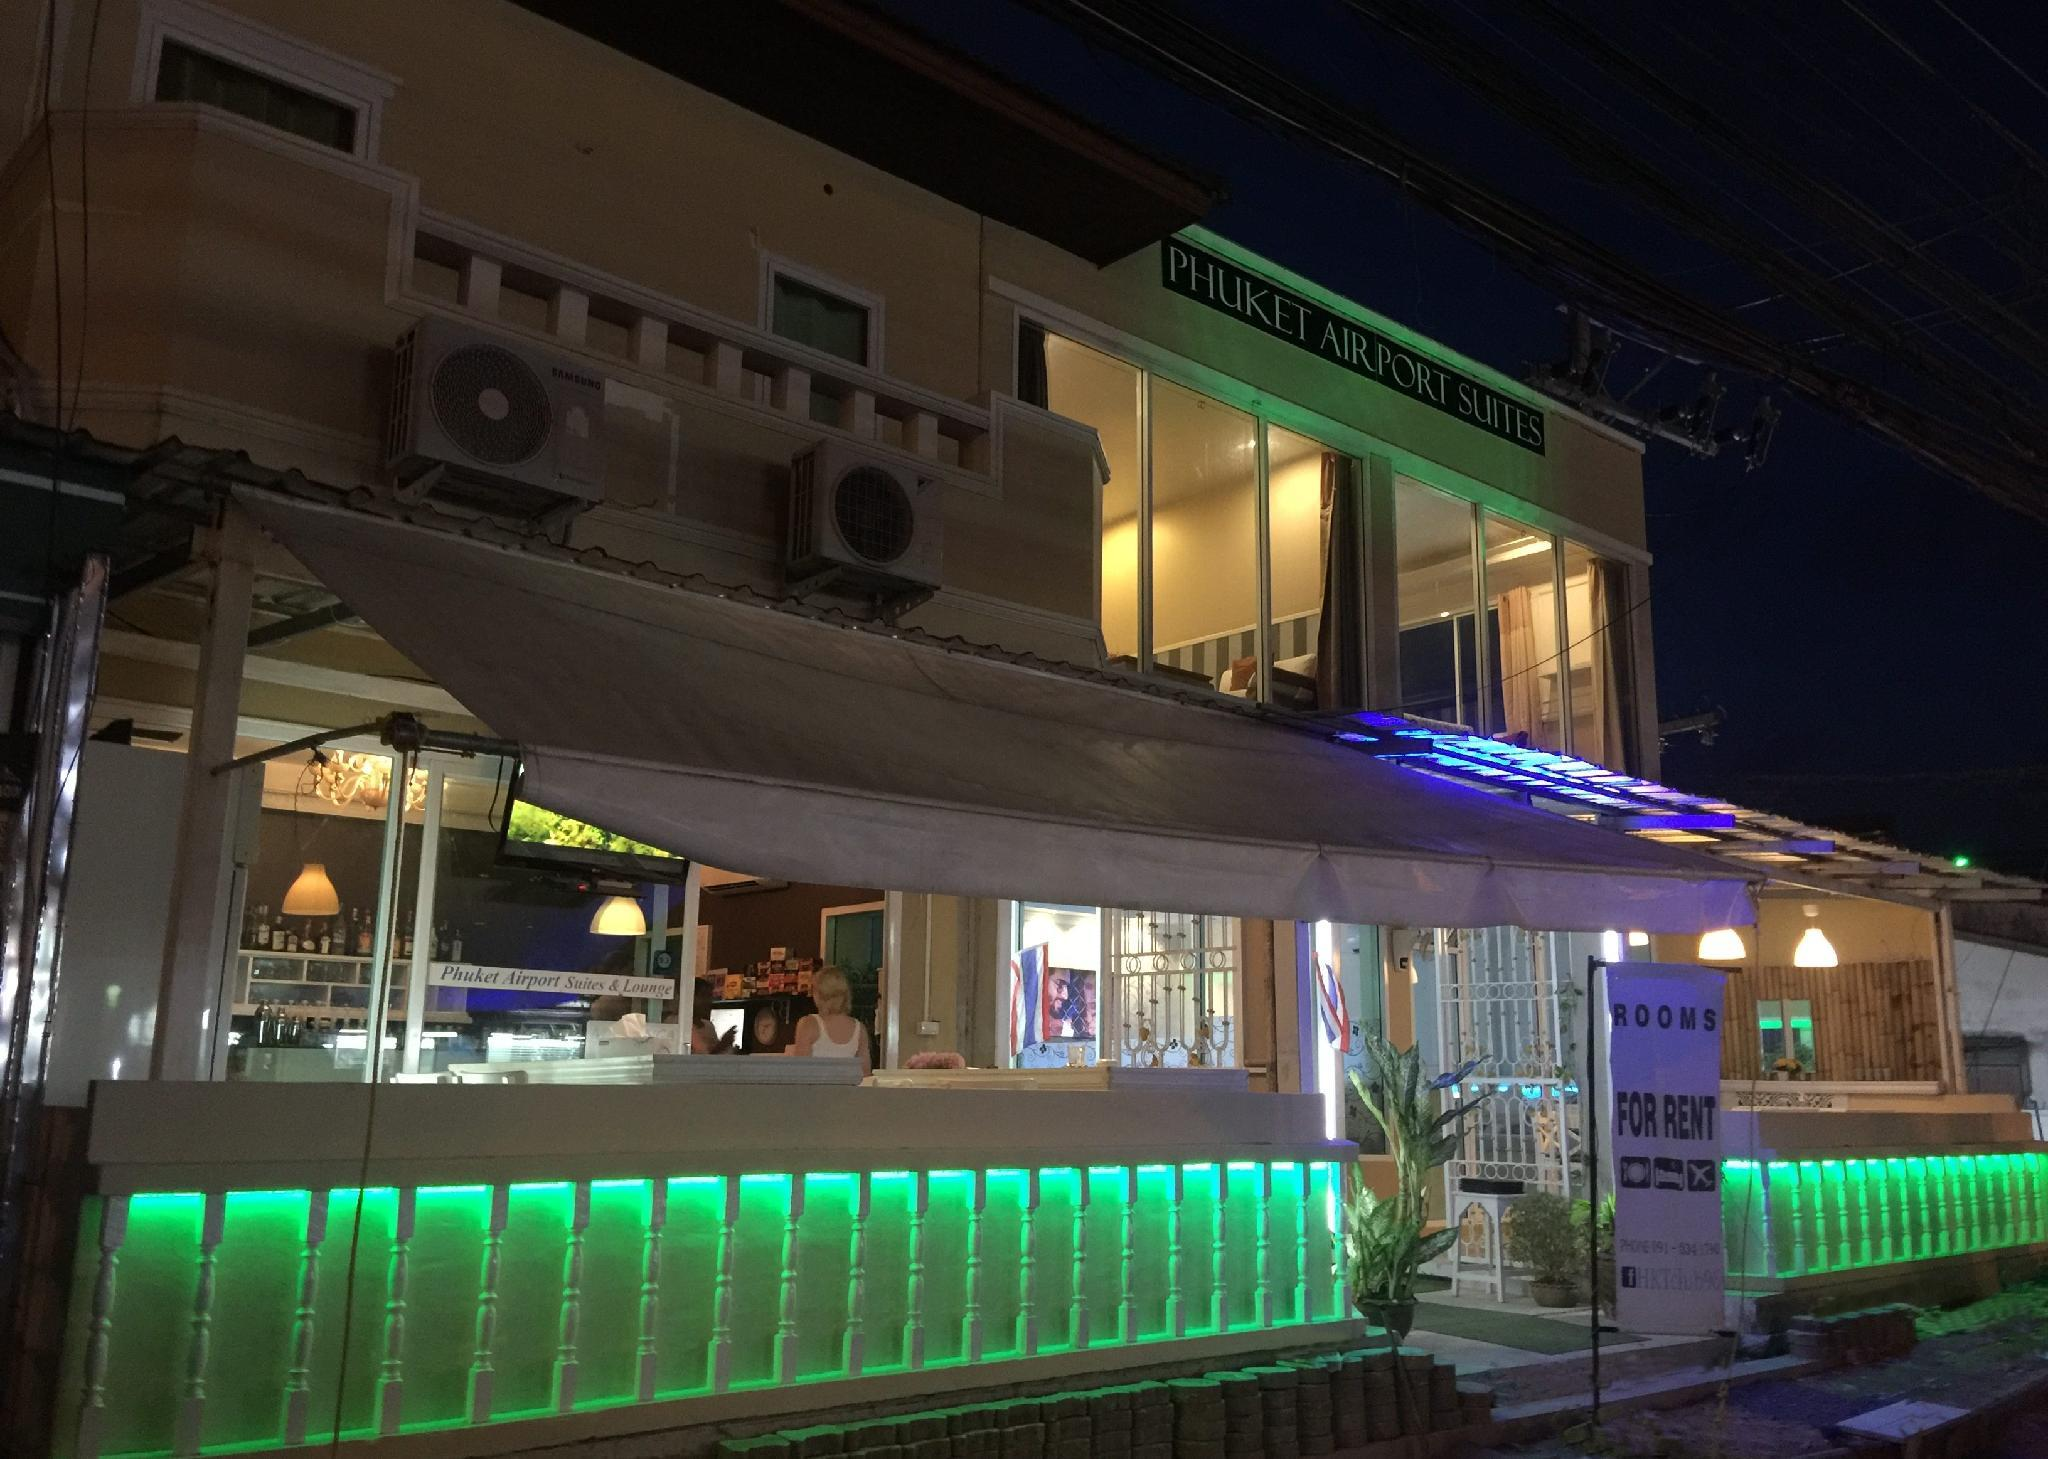 Phuket Airport Suites And Lounge Bar   Club 96